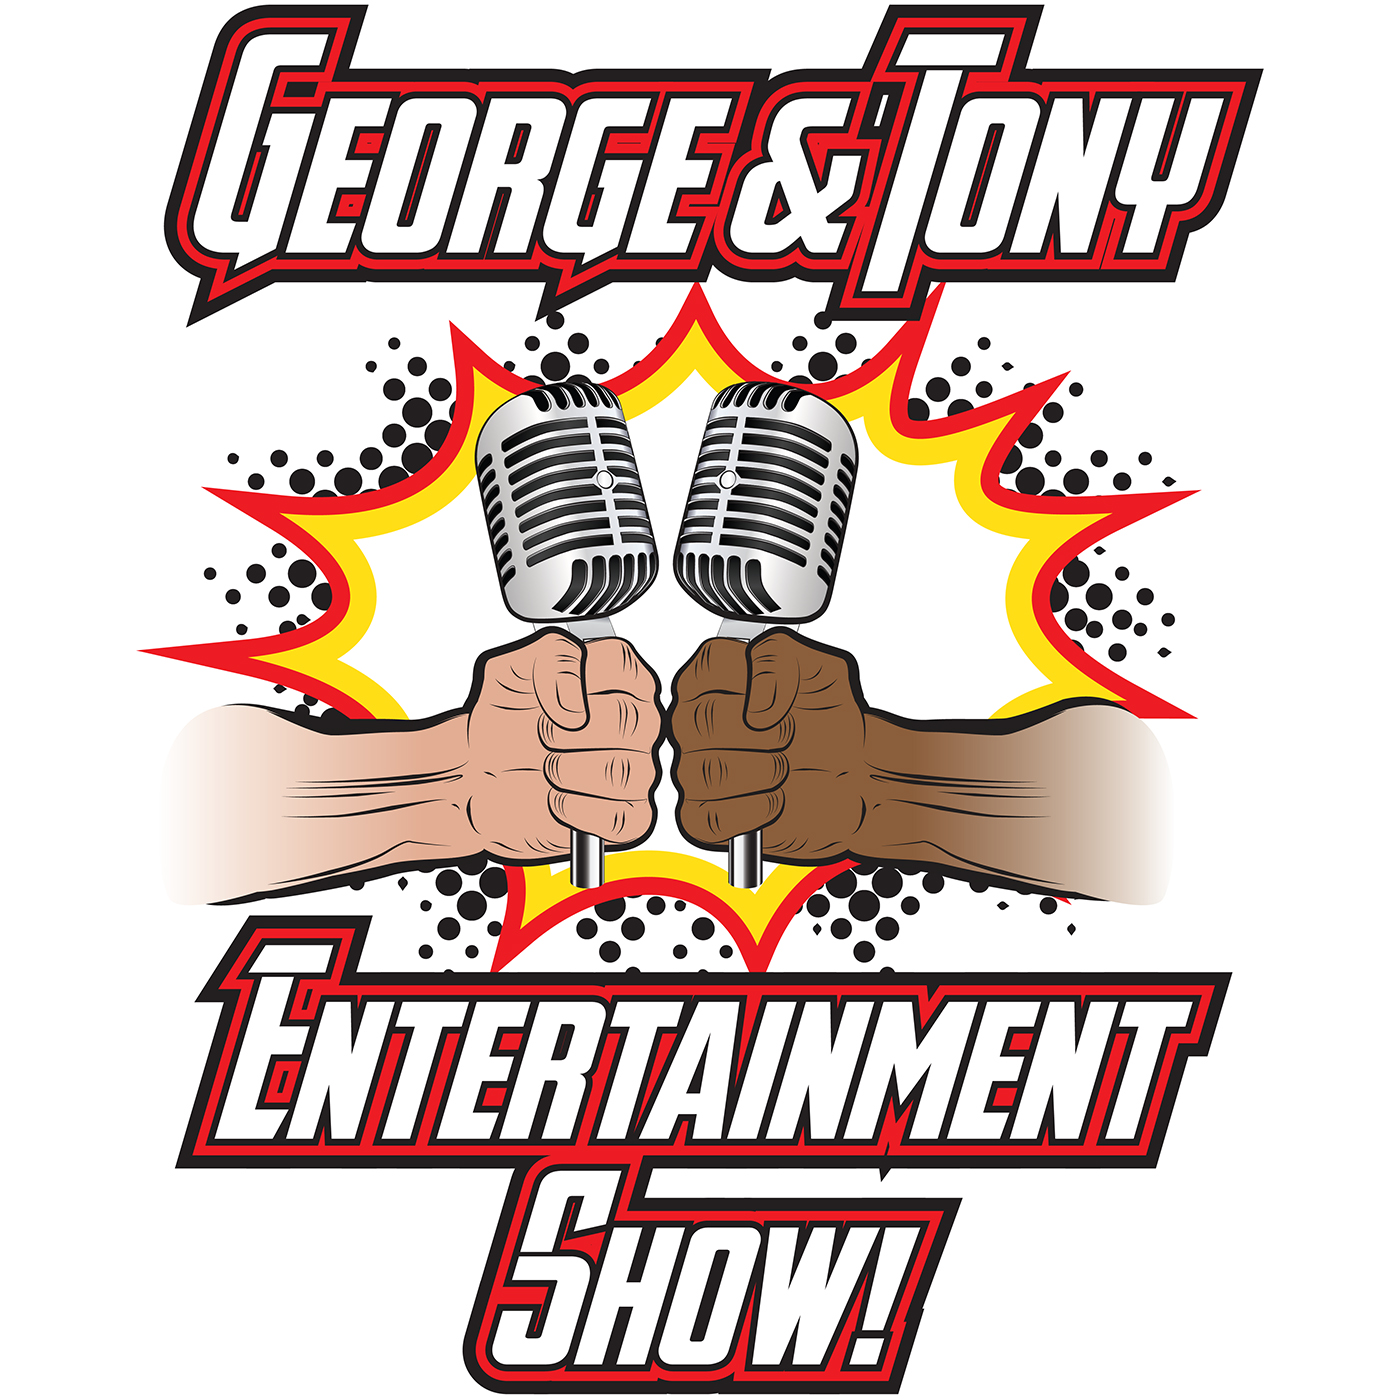 George and Tony Entertainment Show #26